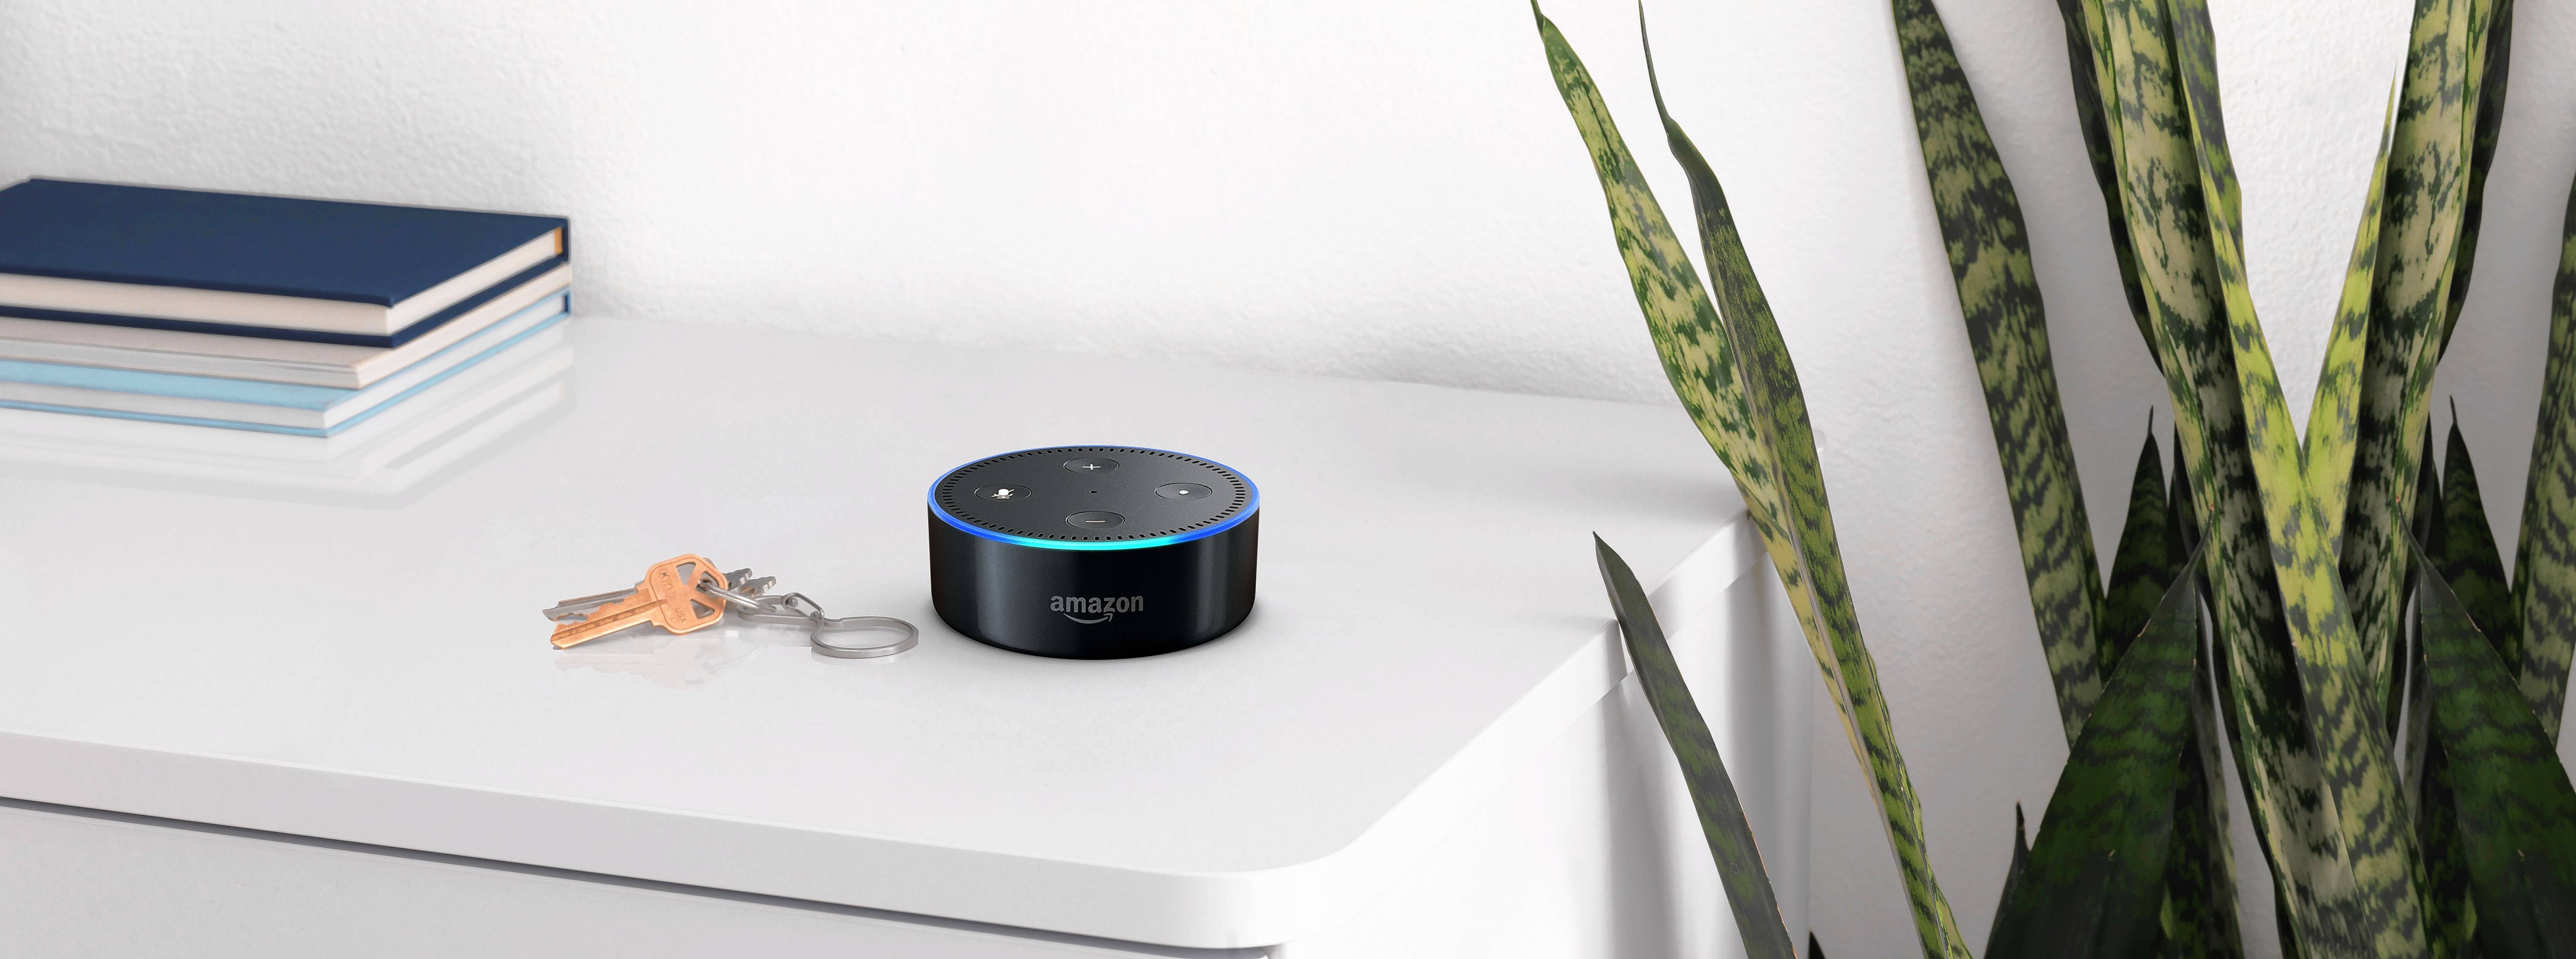 The Echo Dot was one of the top Amazon products purchased this holiday season.